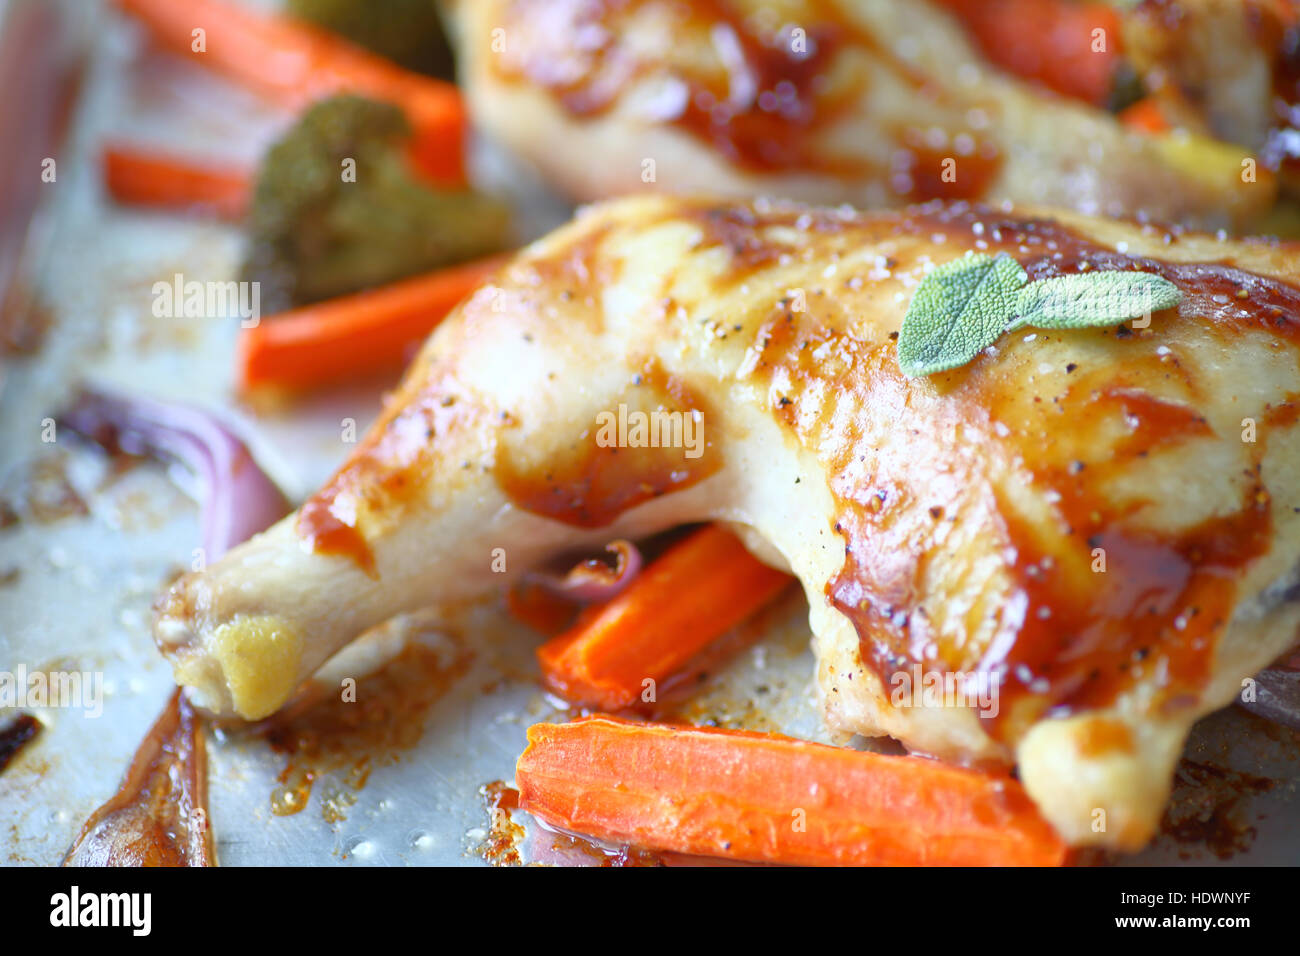 Roast chicken with fresh sage leaves, carrots, broccoli and onions on a sheet pan - Stock Image